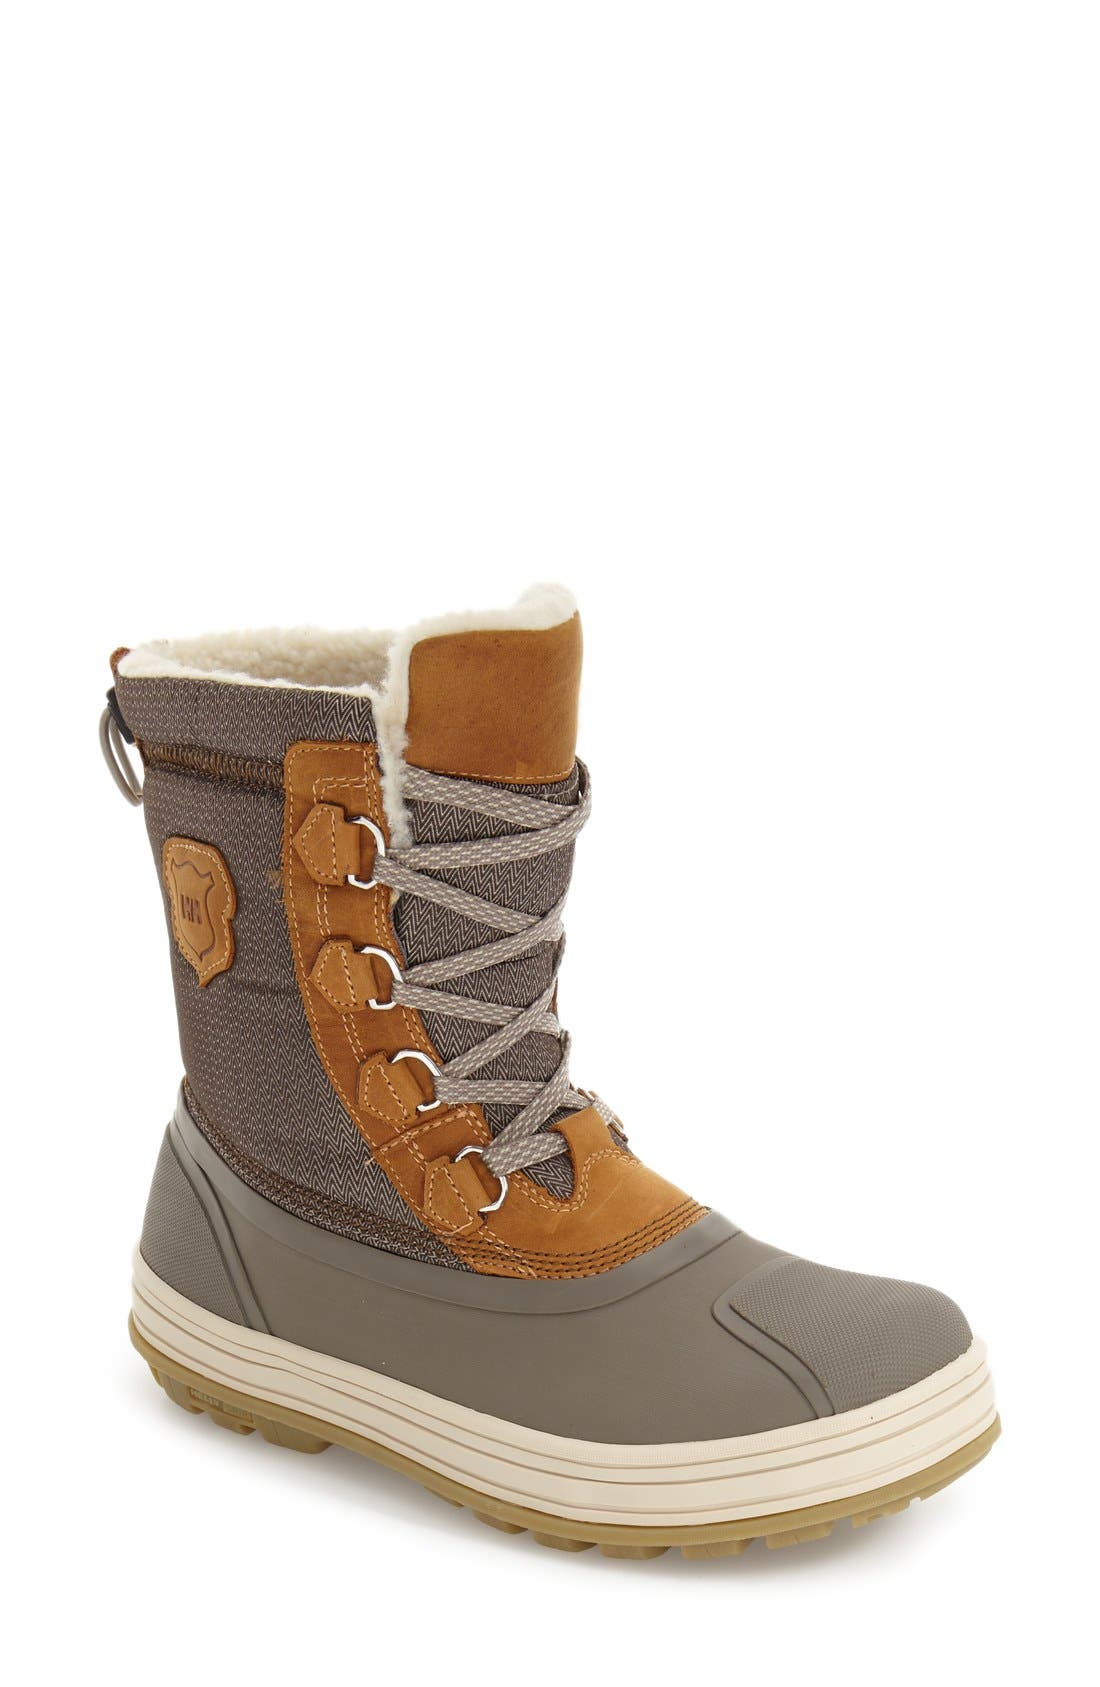 HELLY HANSEN 'Framheim' Winter Boot